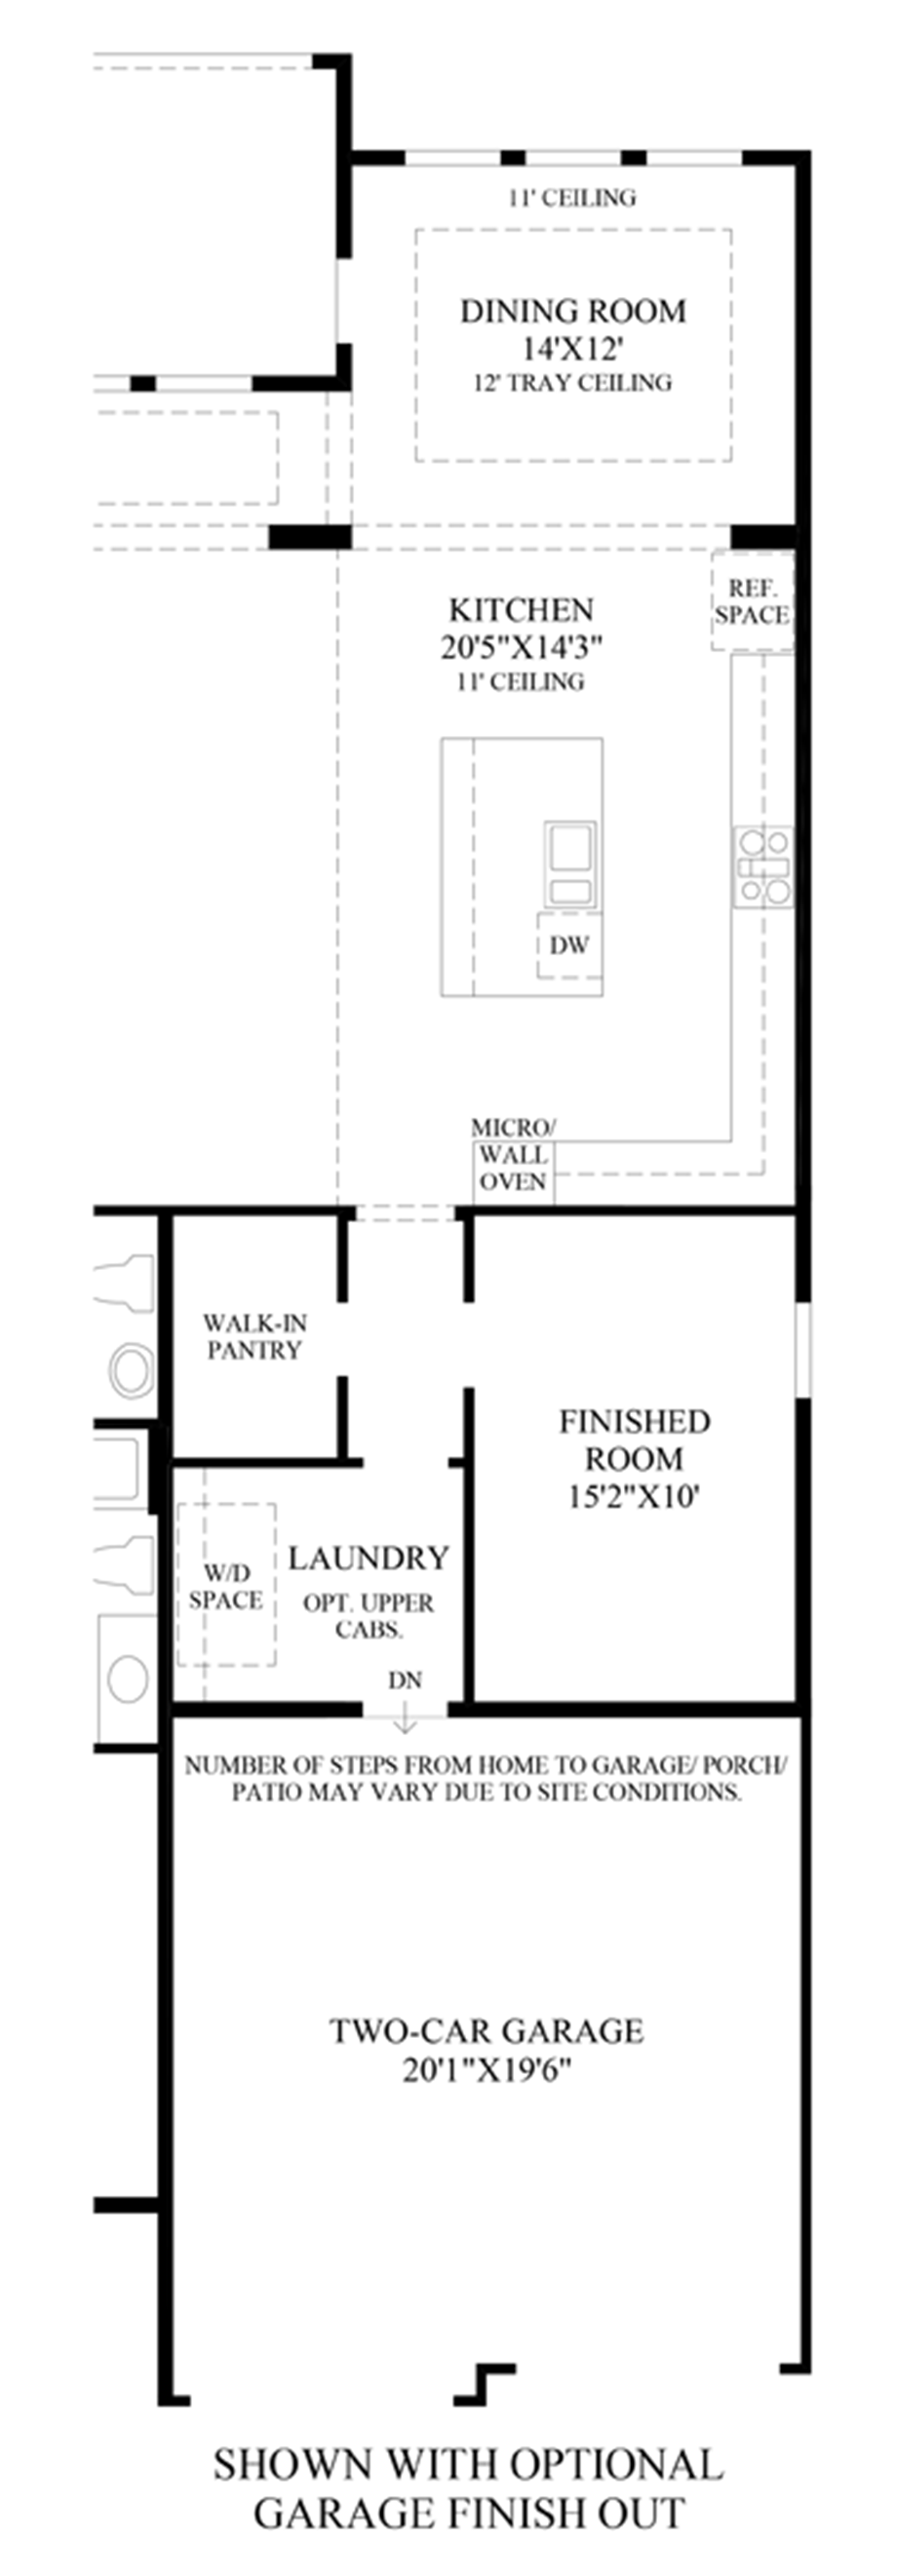 Optional Garage Finish Out Floor Plan